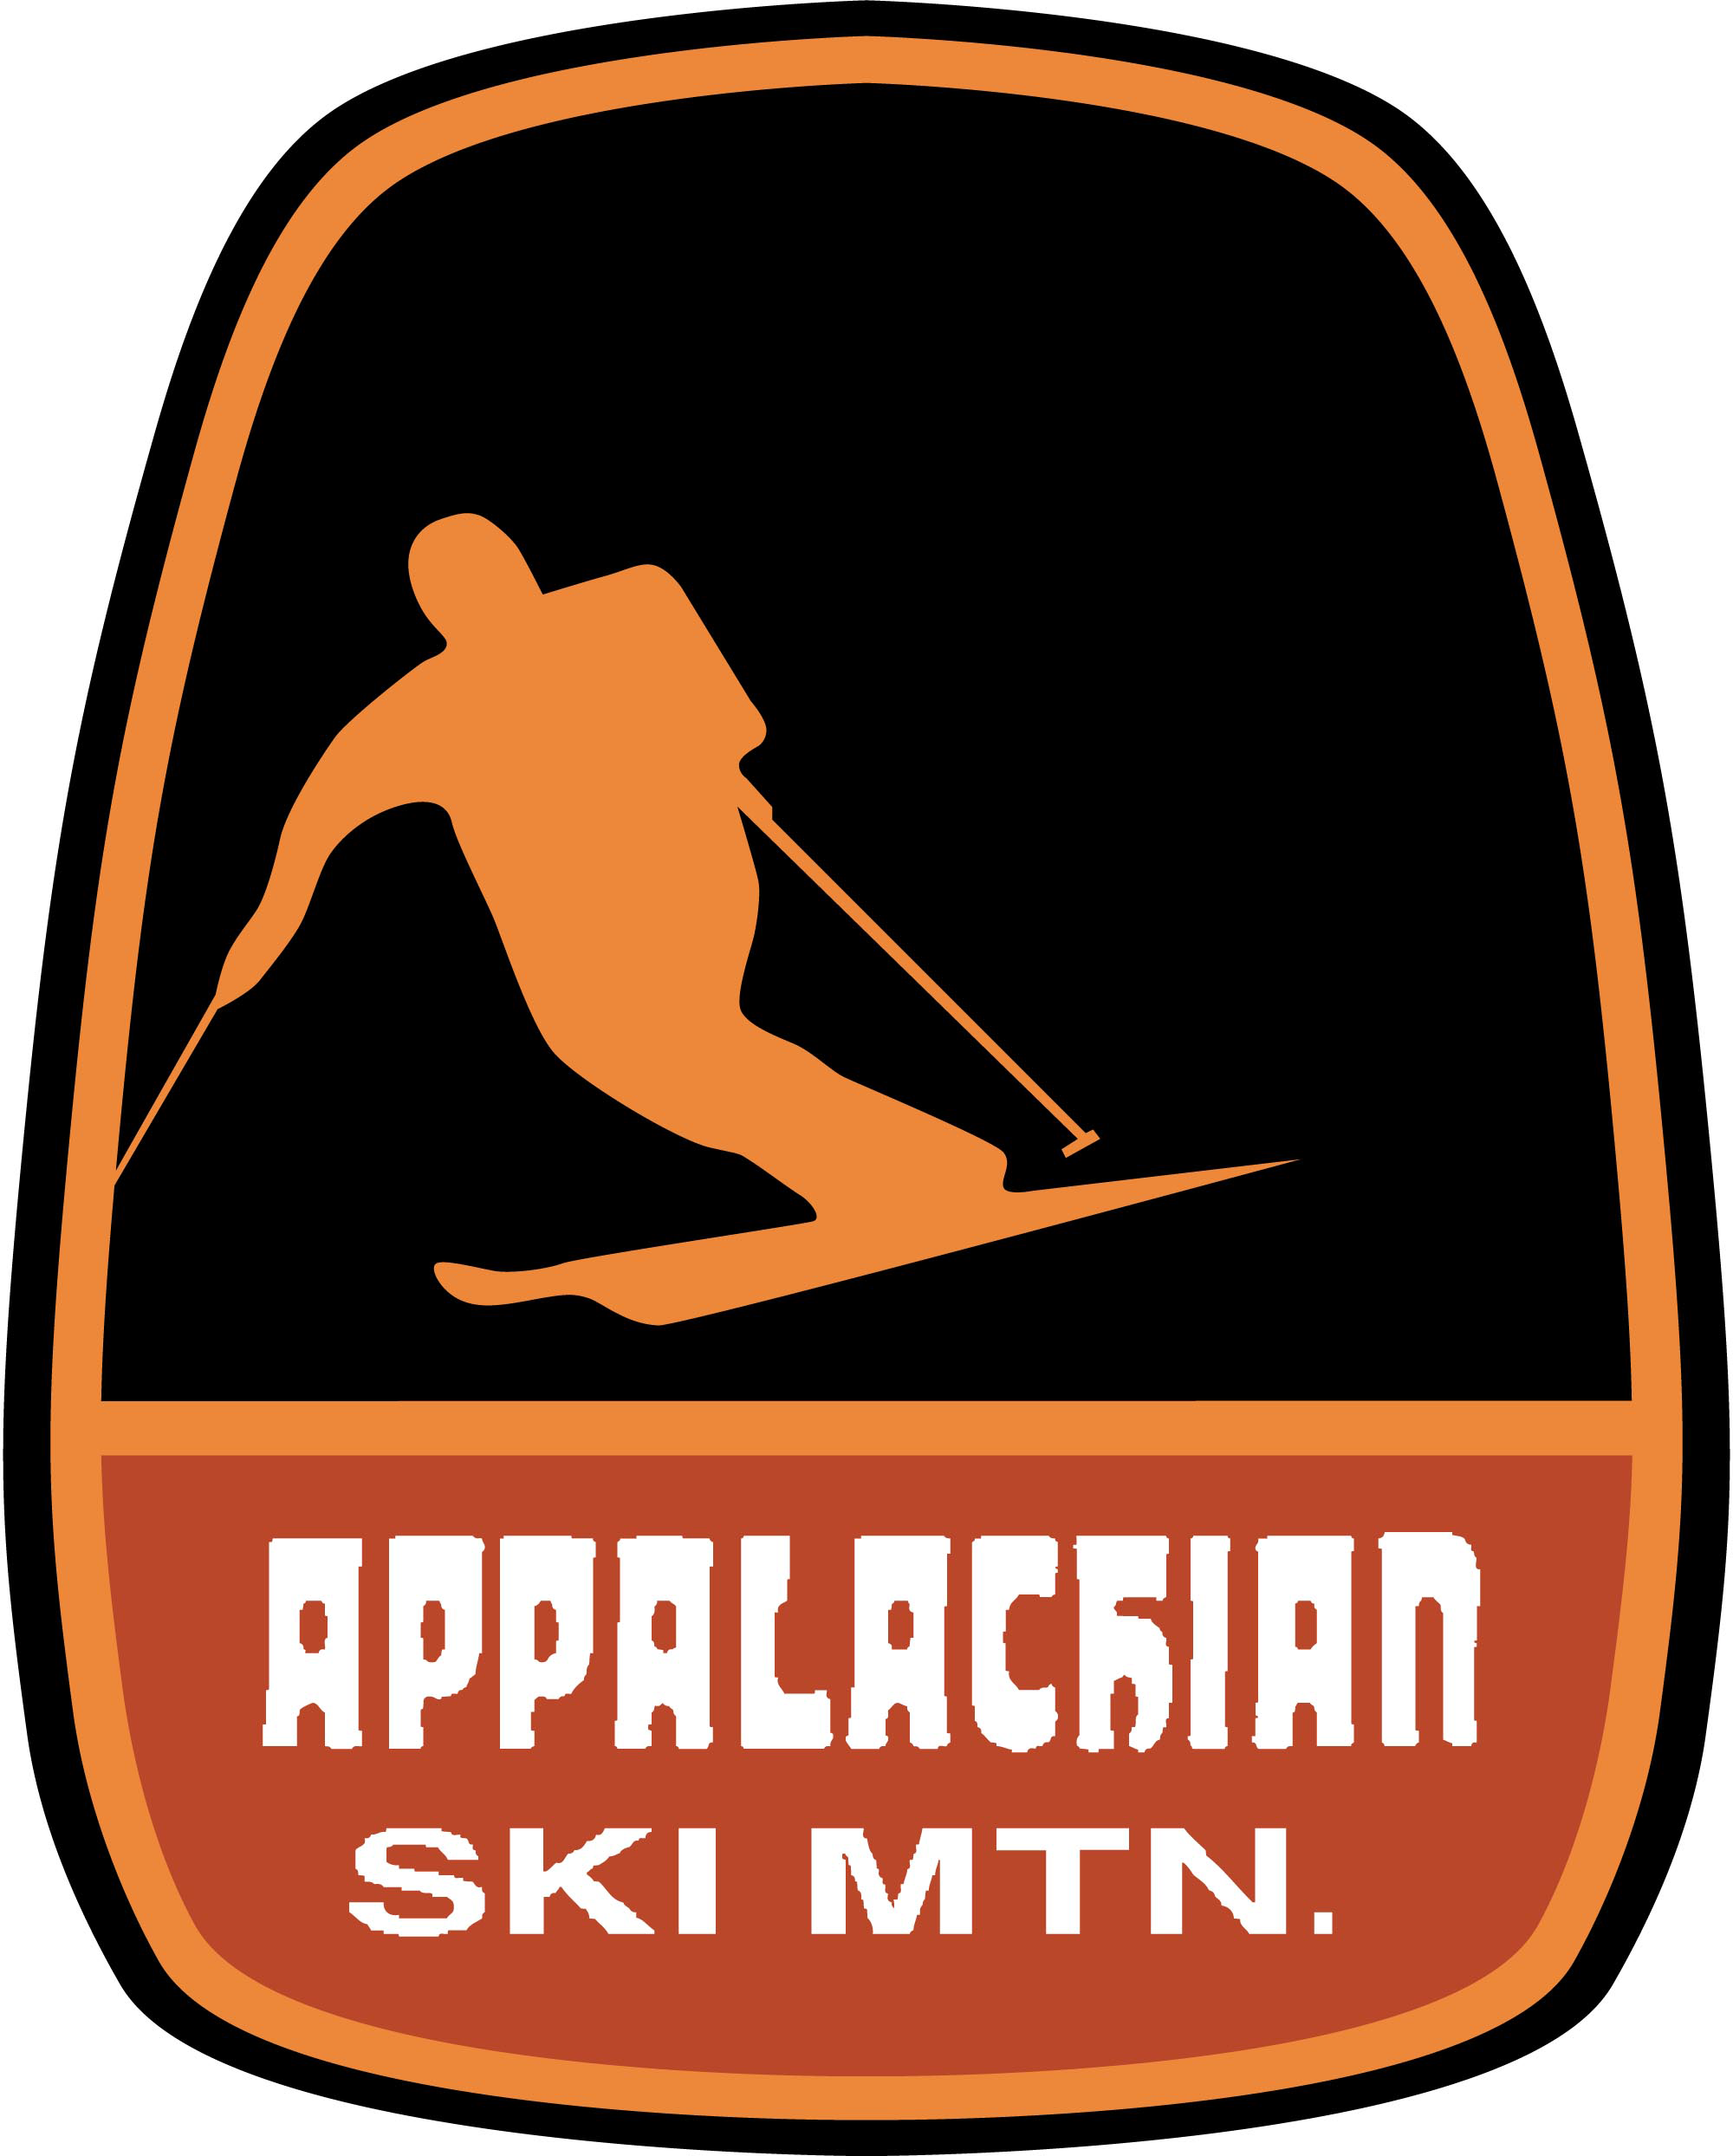 Appalachian Ski Mountain